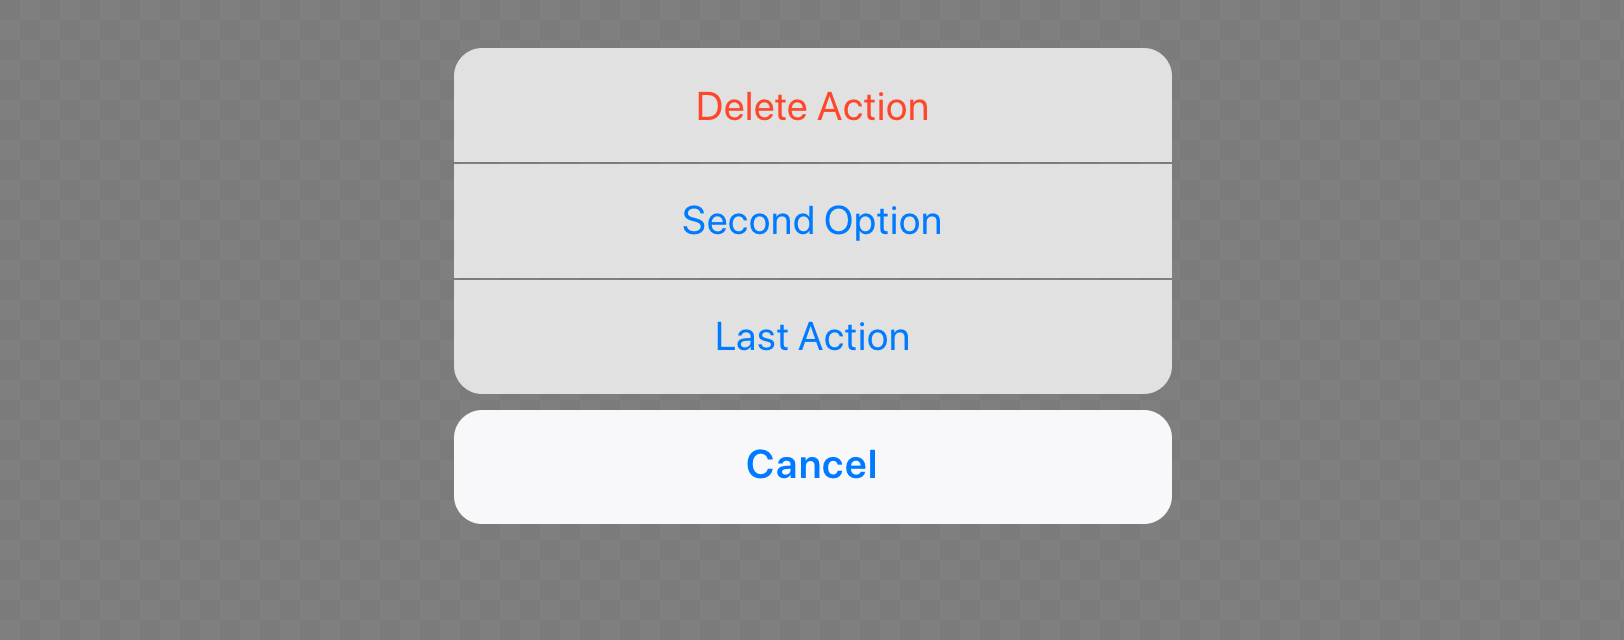 iOS action sheet view